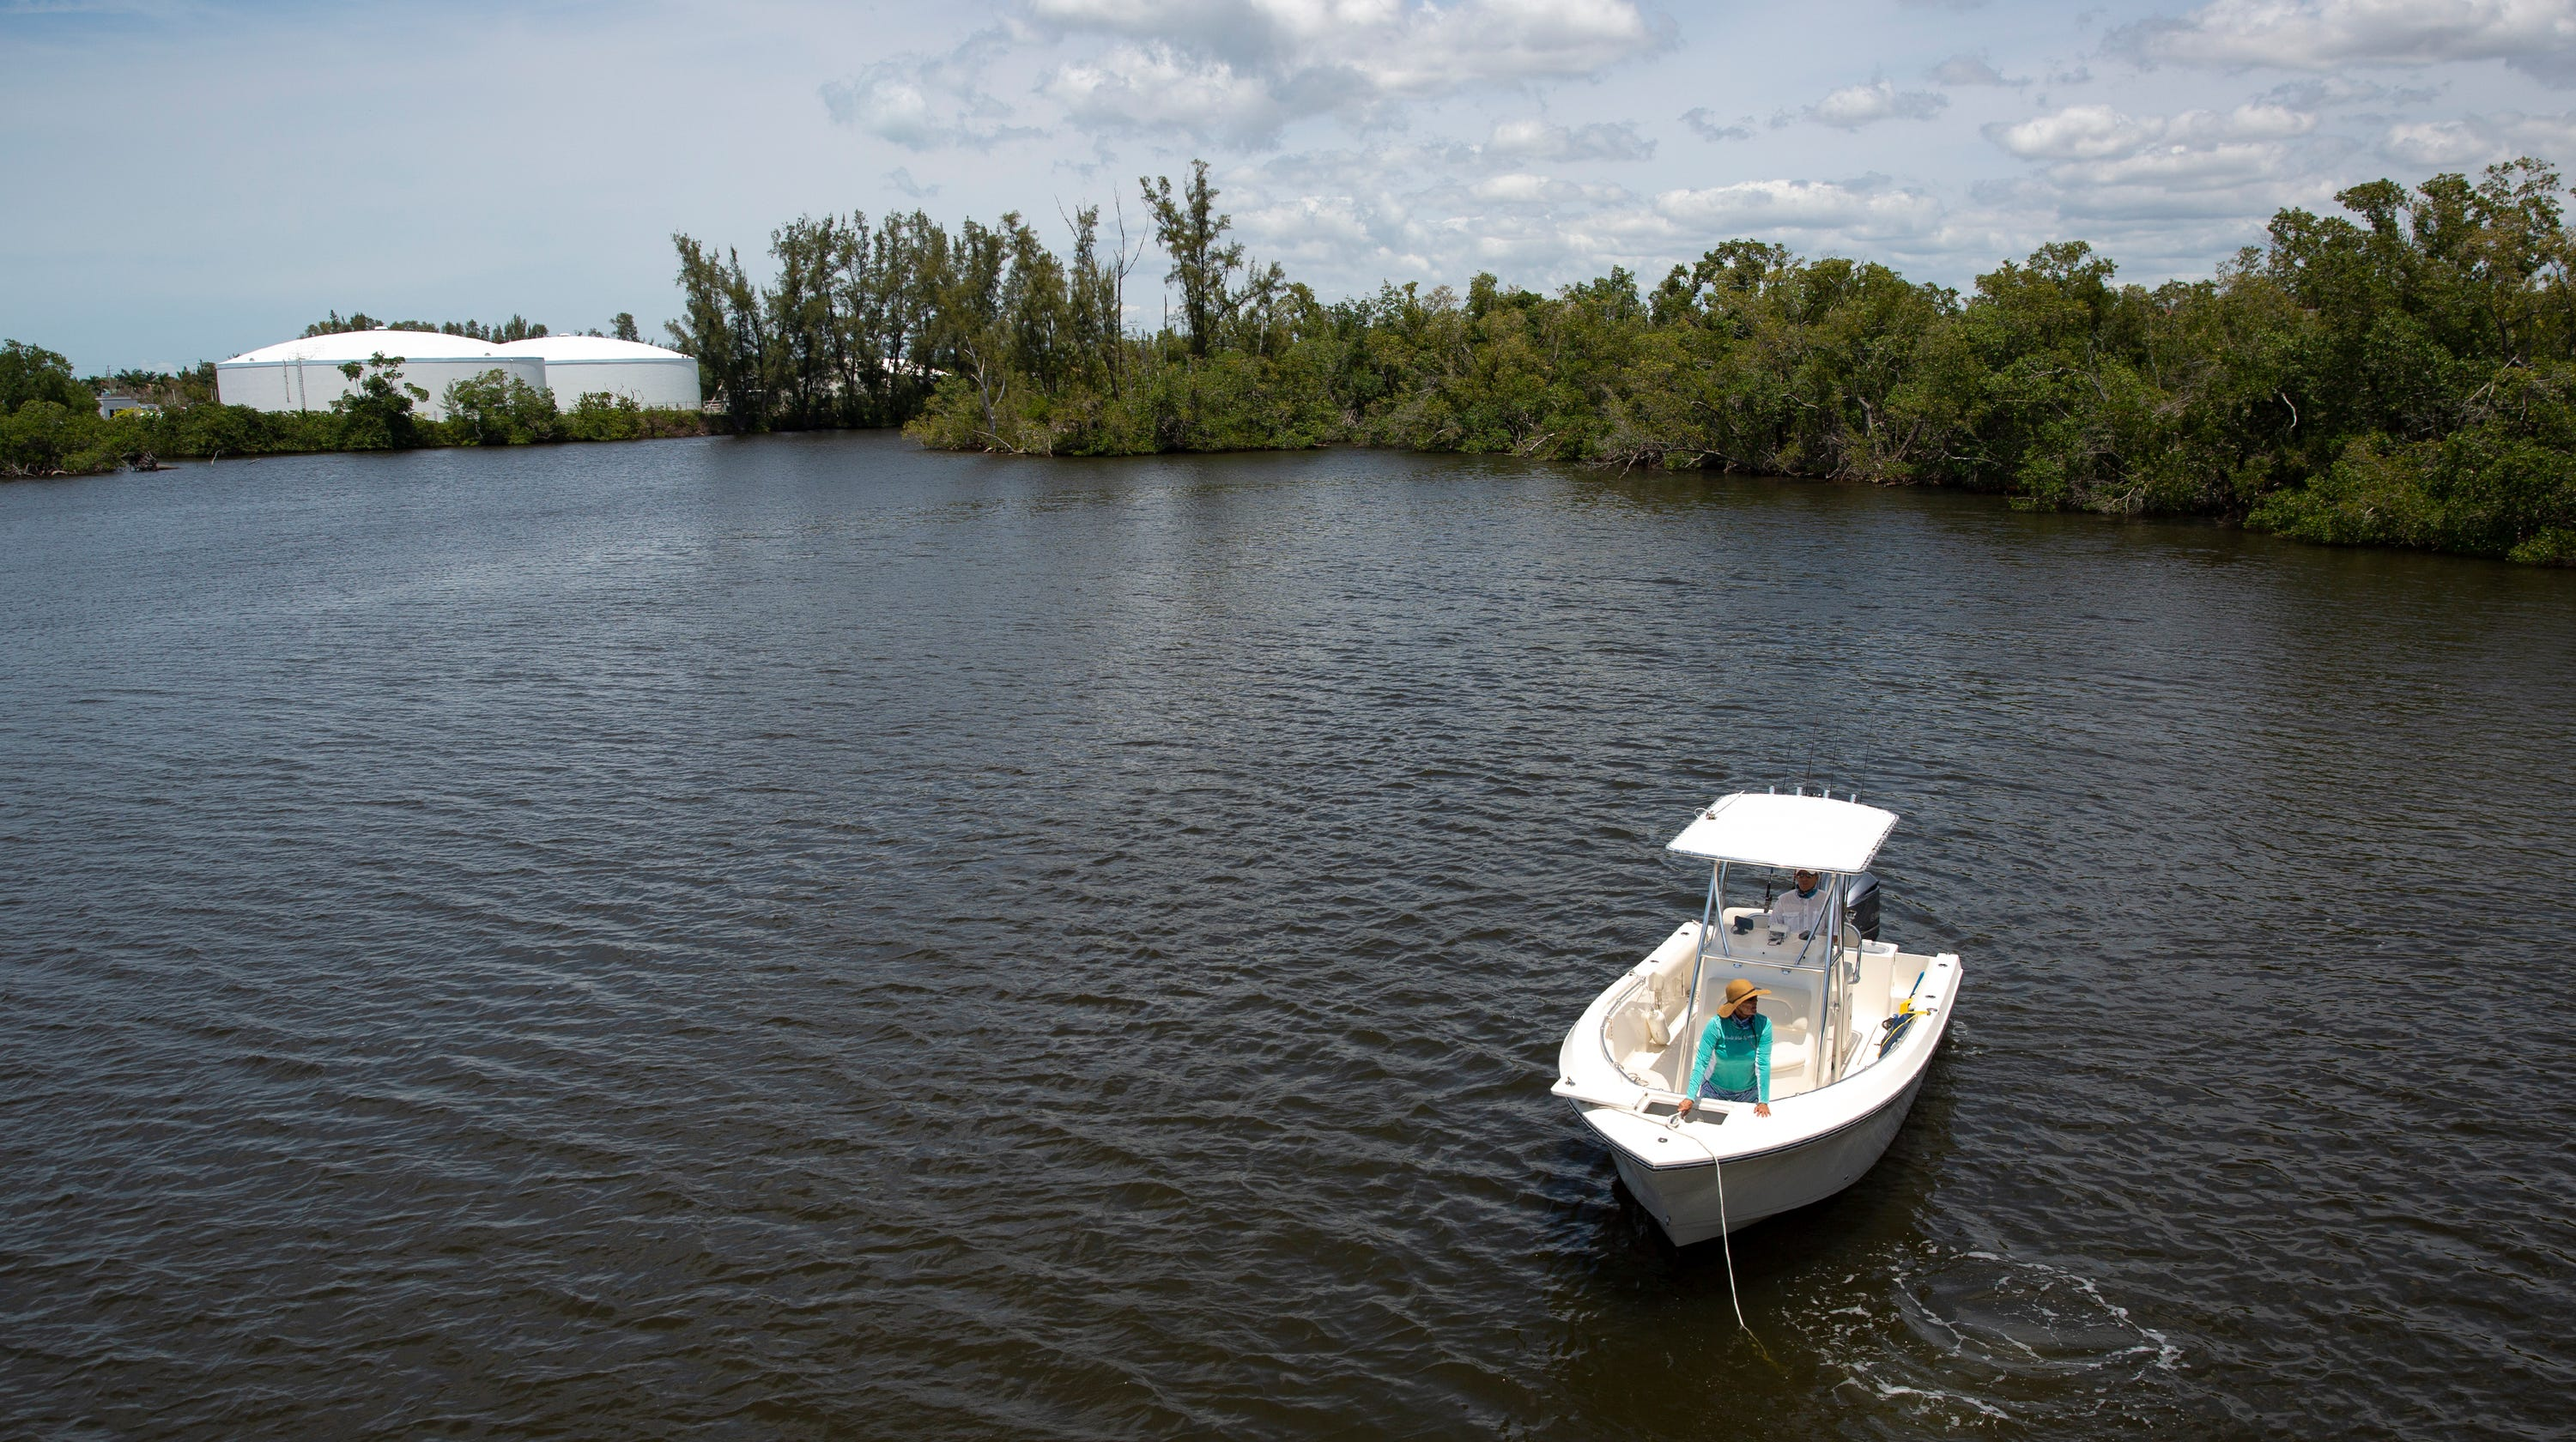 Collier County Waterkeeper: Gordon River has high levels of bacteria